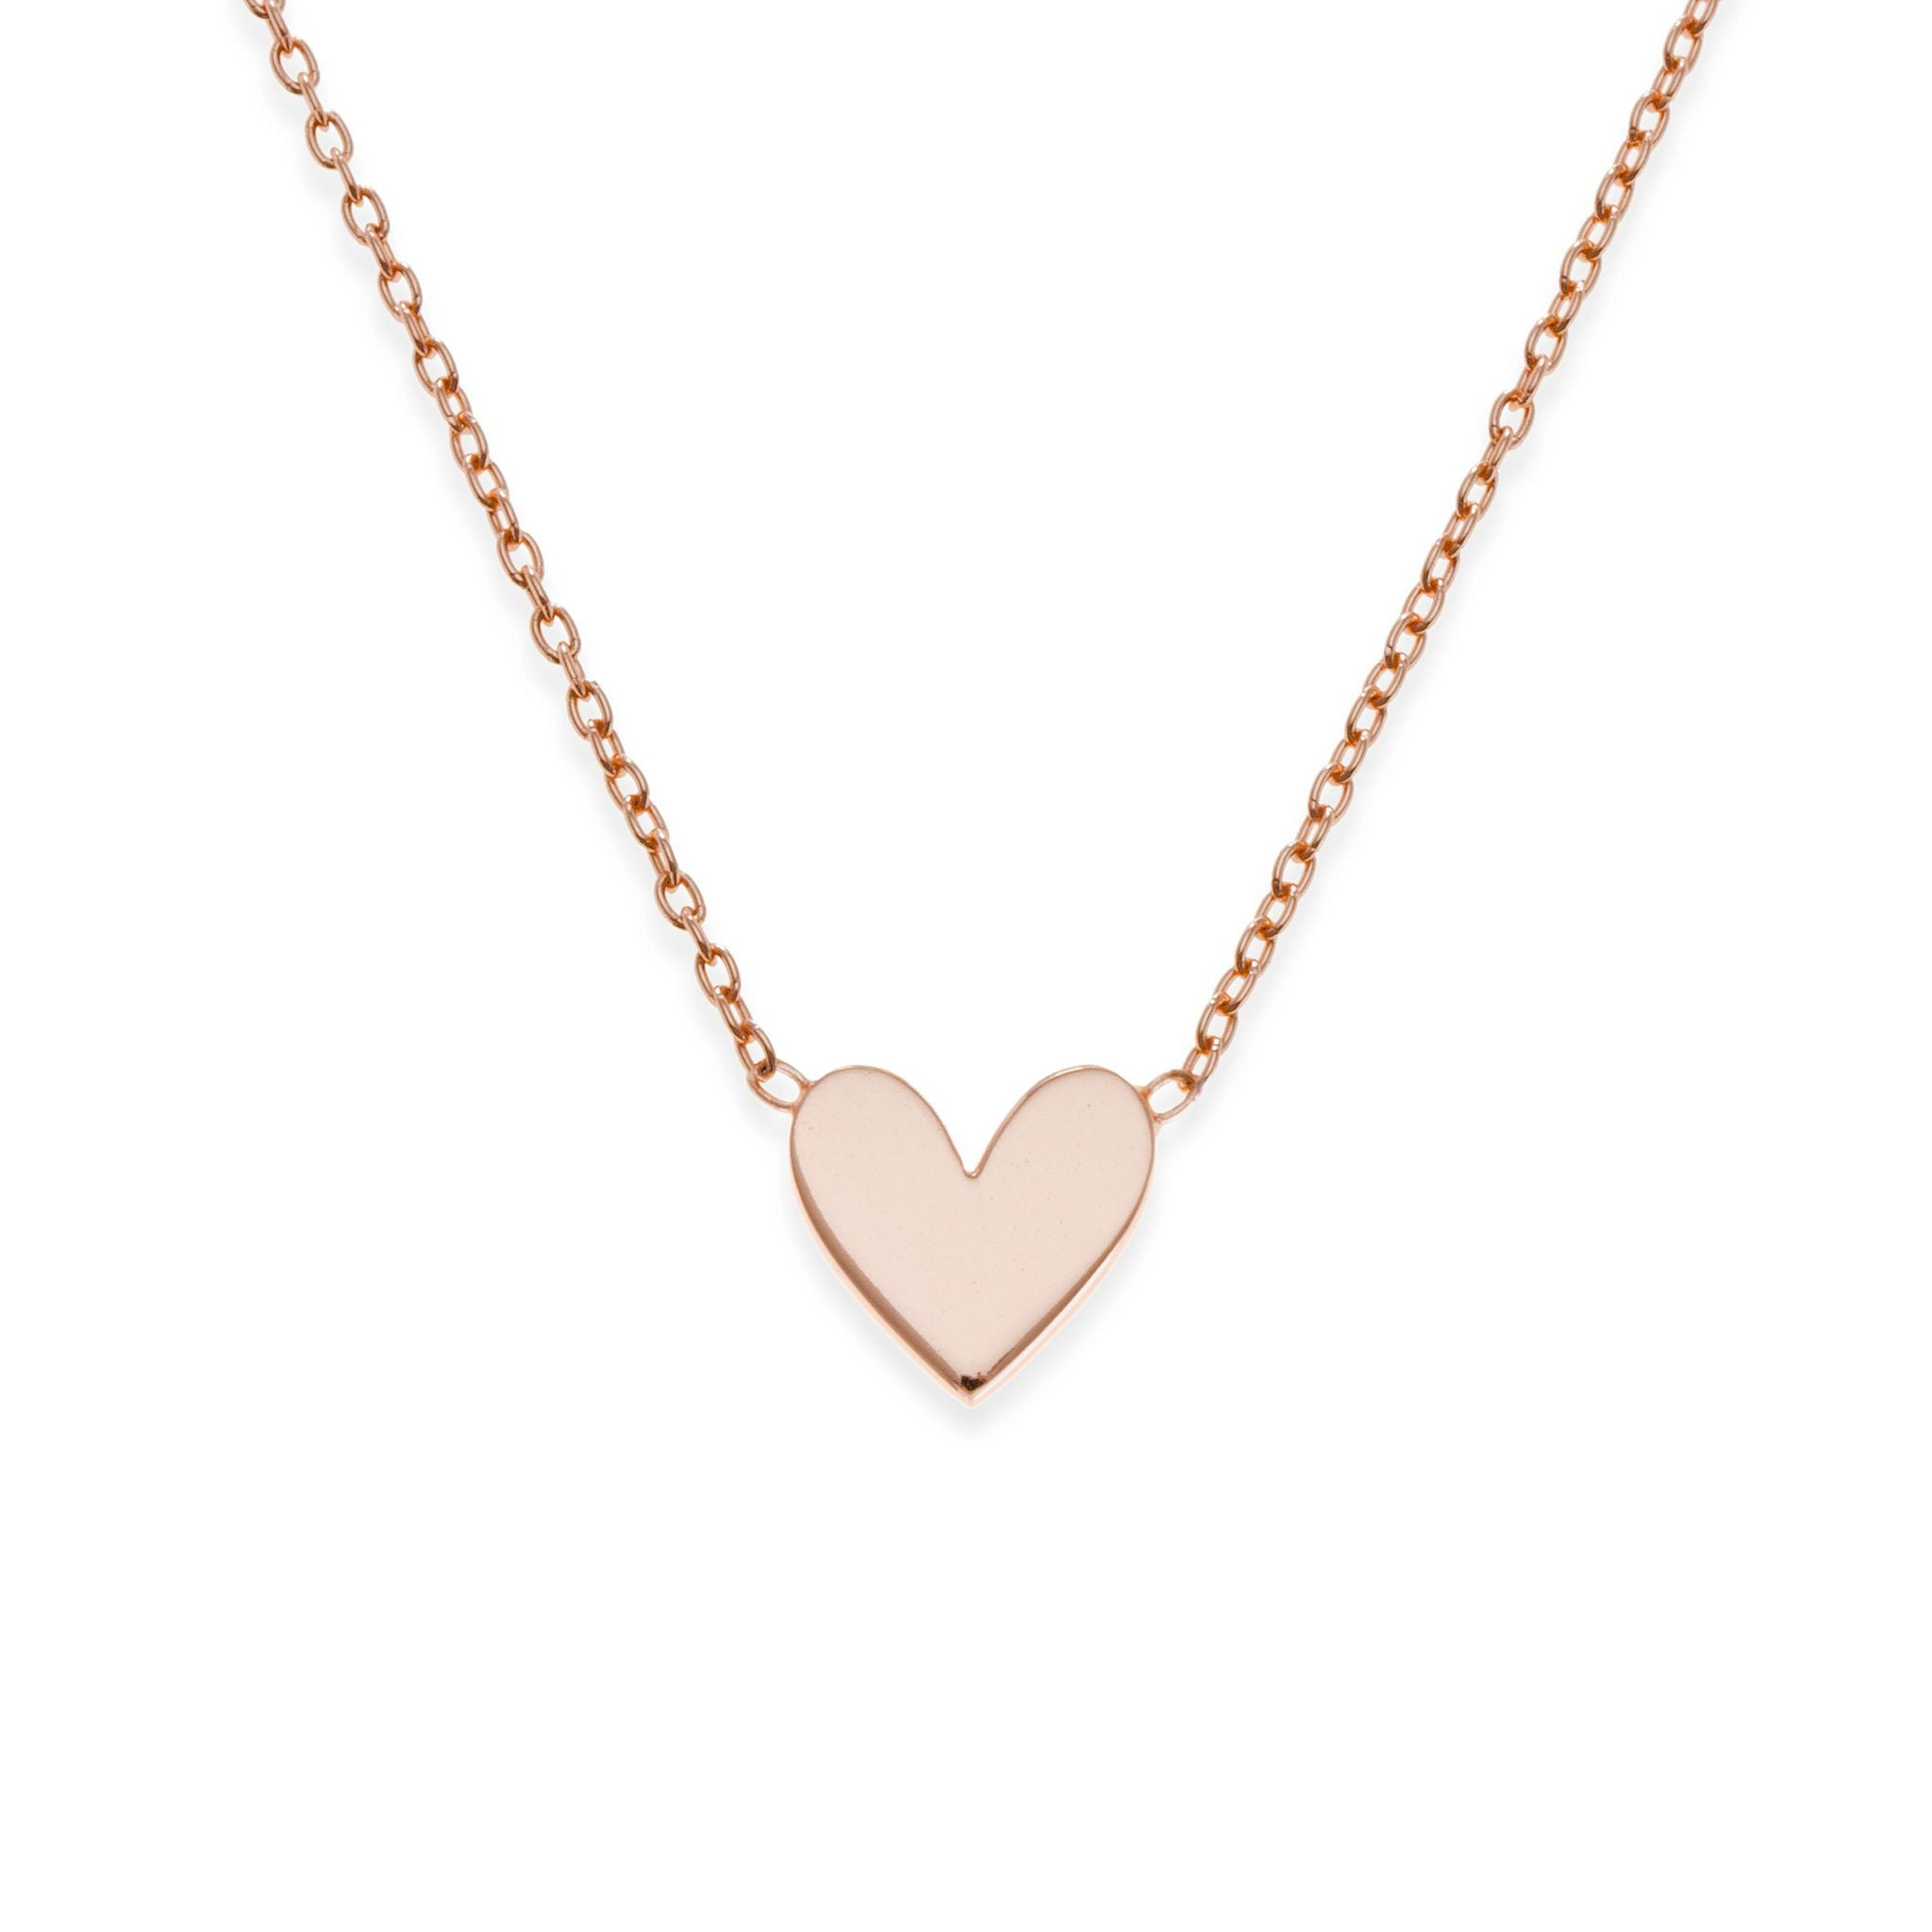 of nitro hrts frankfort heart nk necklace kentucky